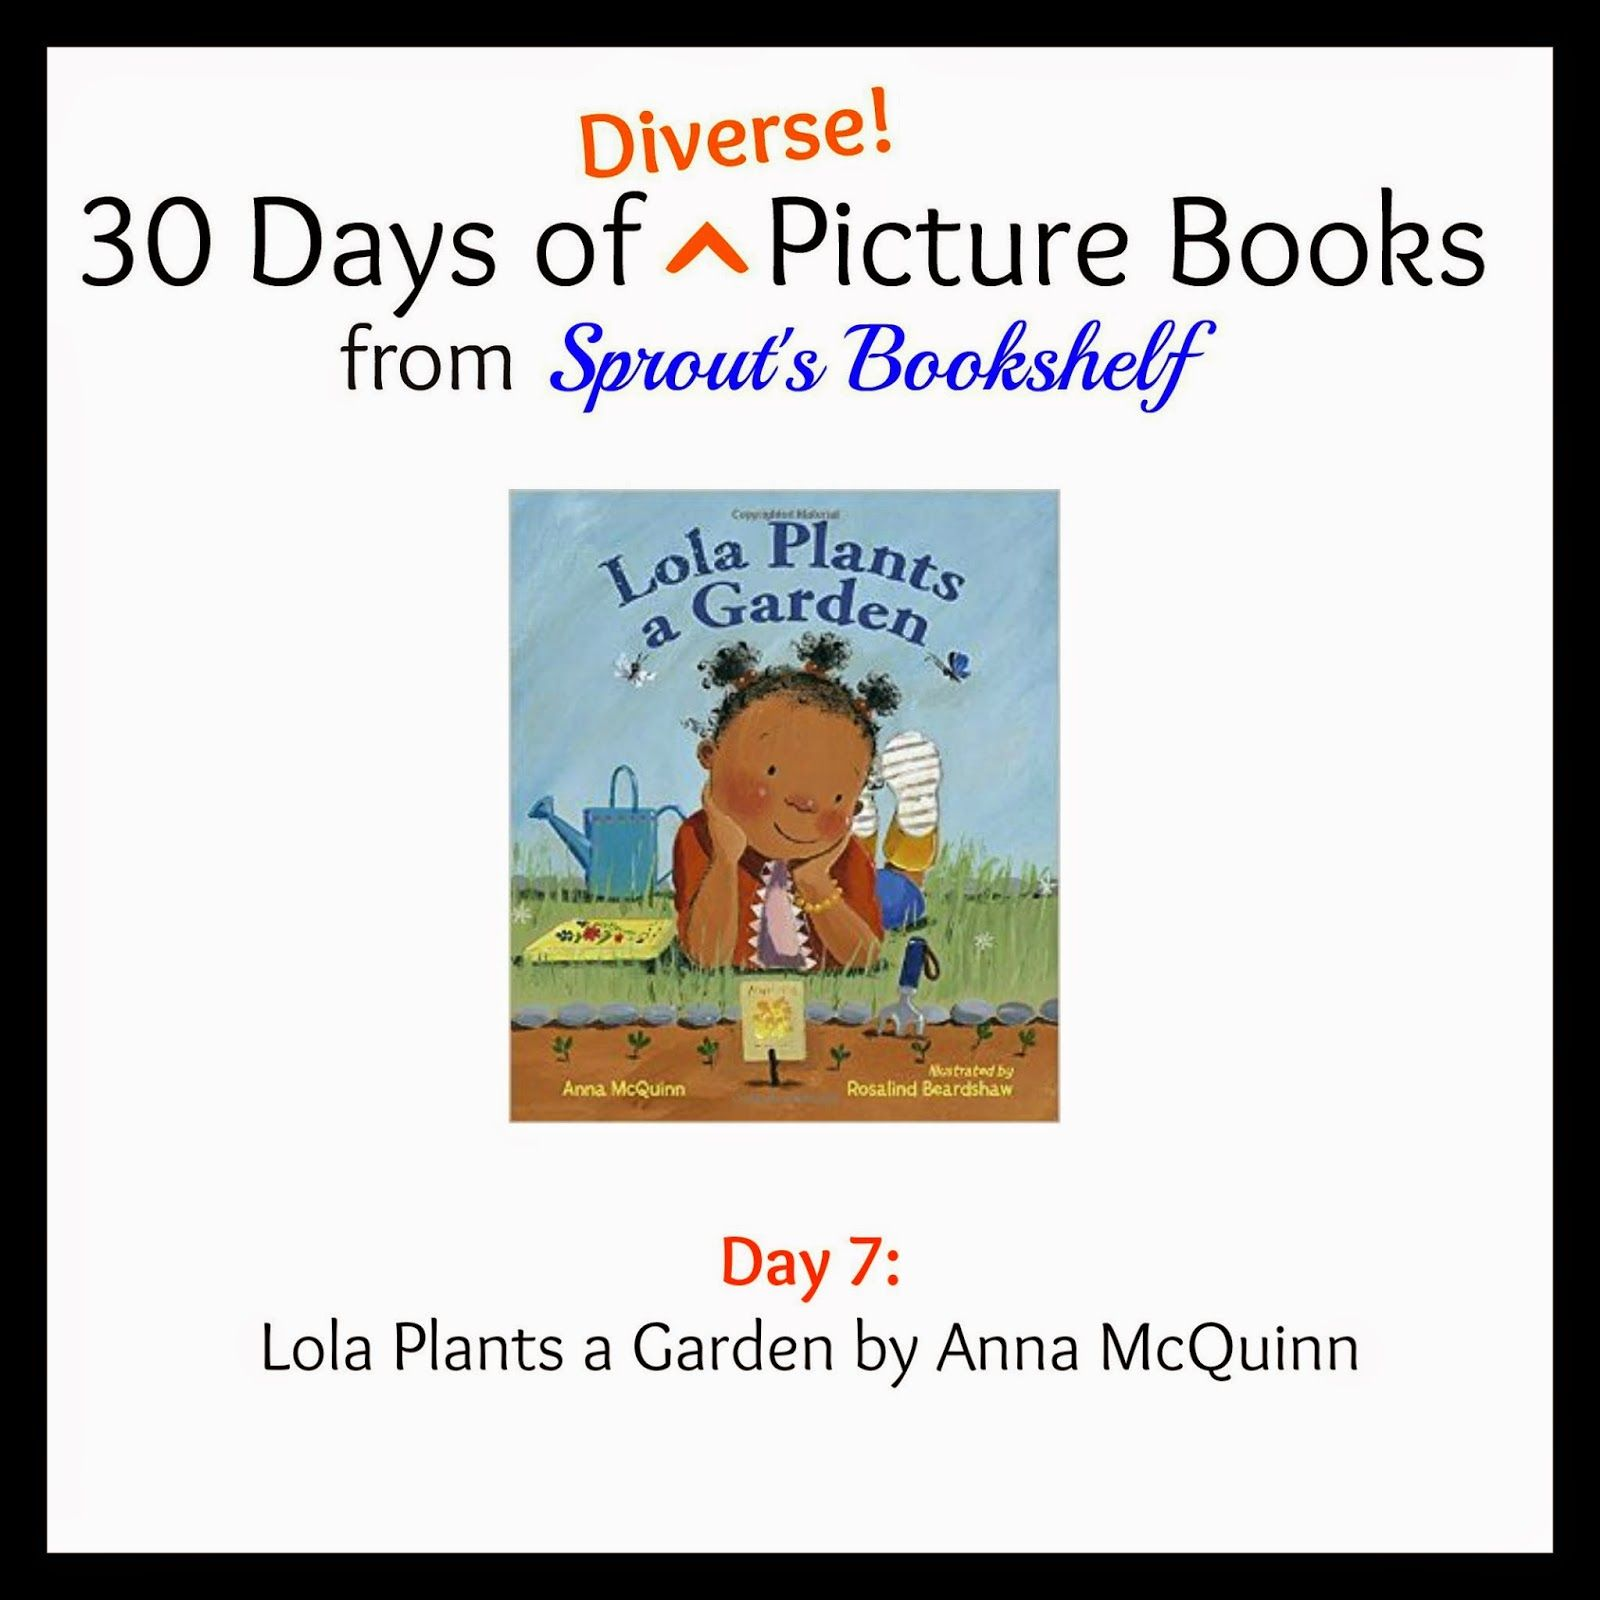 Sprout's Bookshelf: 30 Days of Diverse Picture Books - Lola Plants a Garden. One thing I love about Lola Plants a Garden is that it teaches kids how to work through a project from beginning to end. @sproutsbkshelf